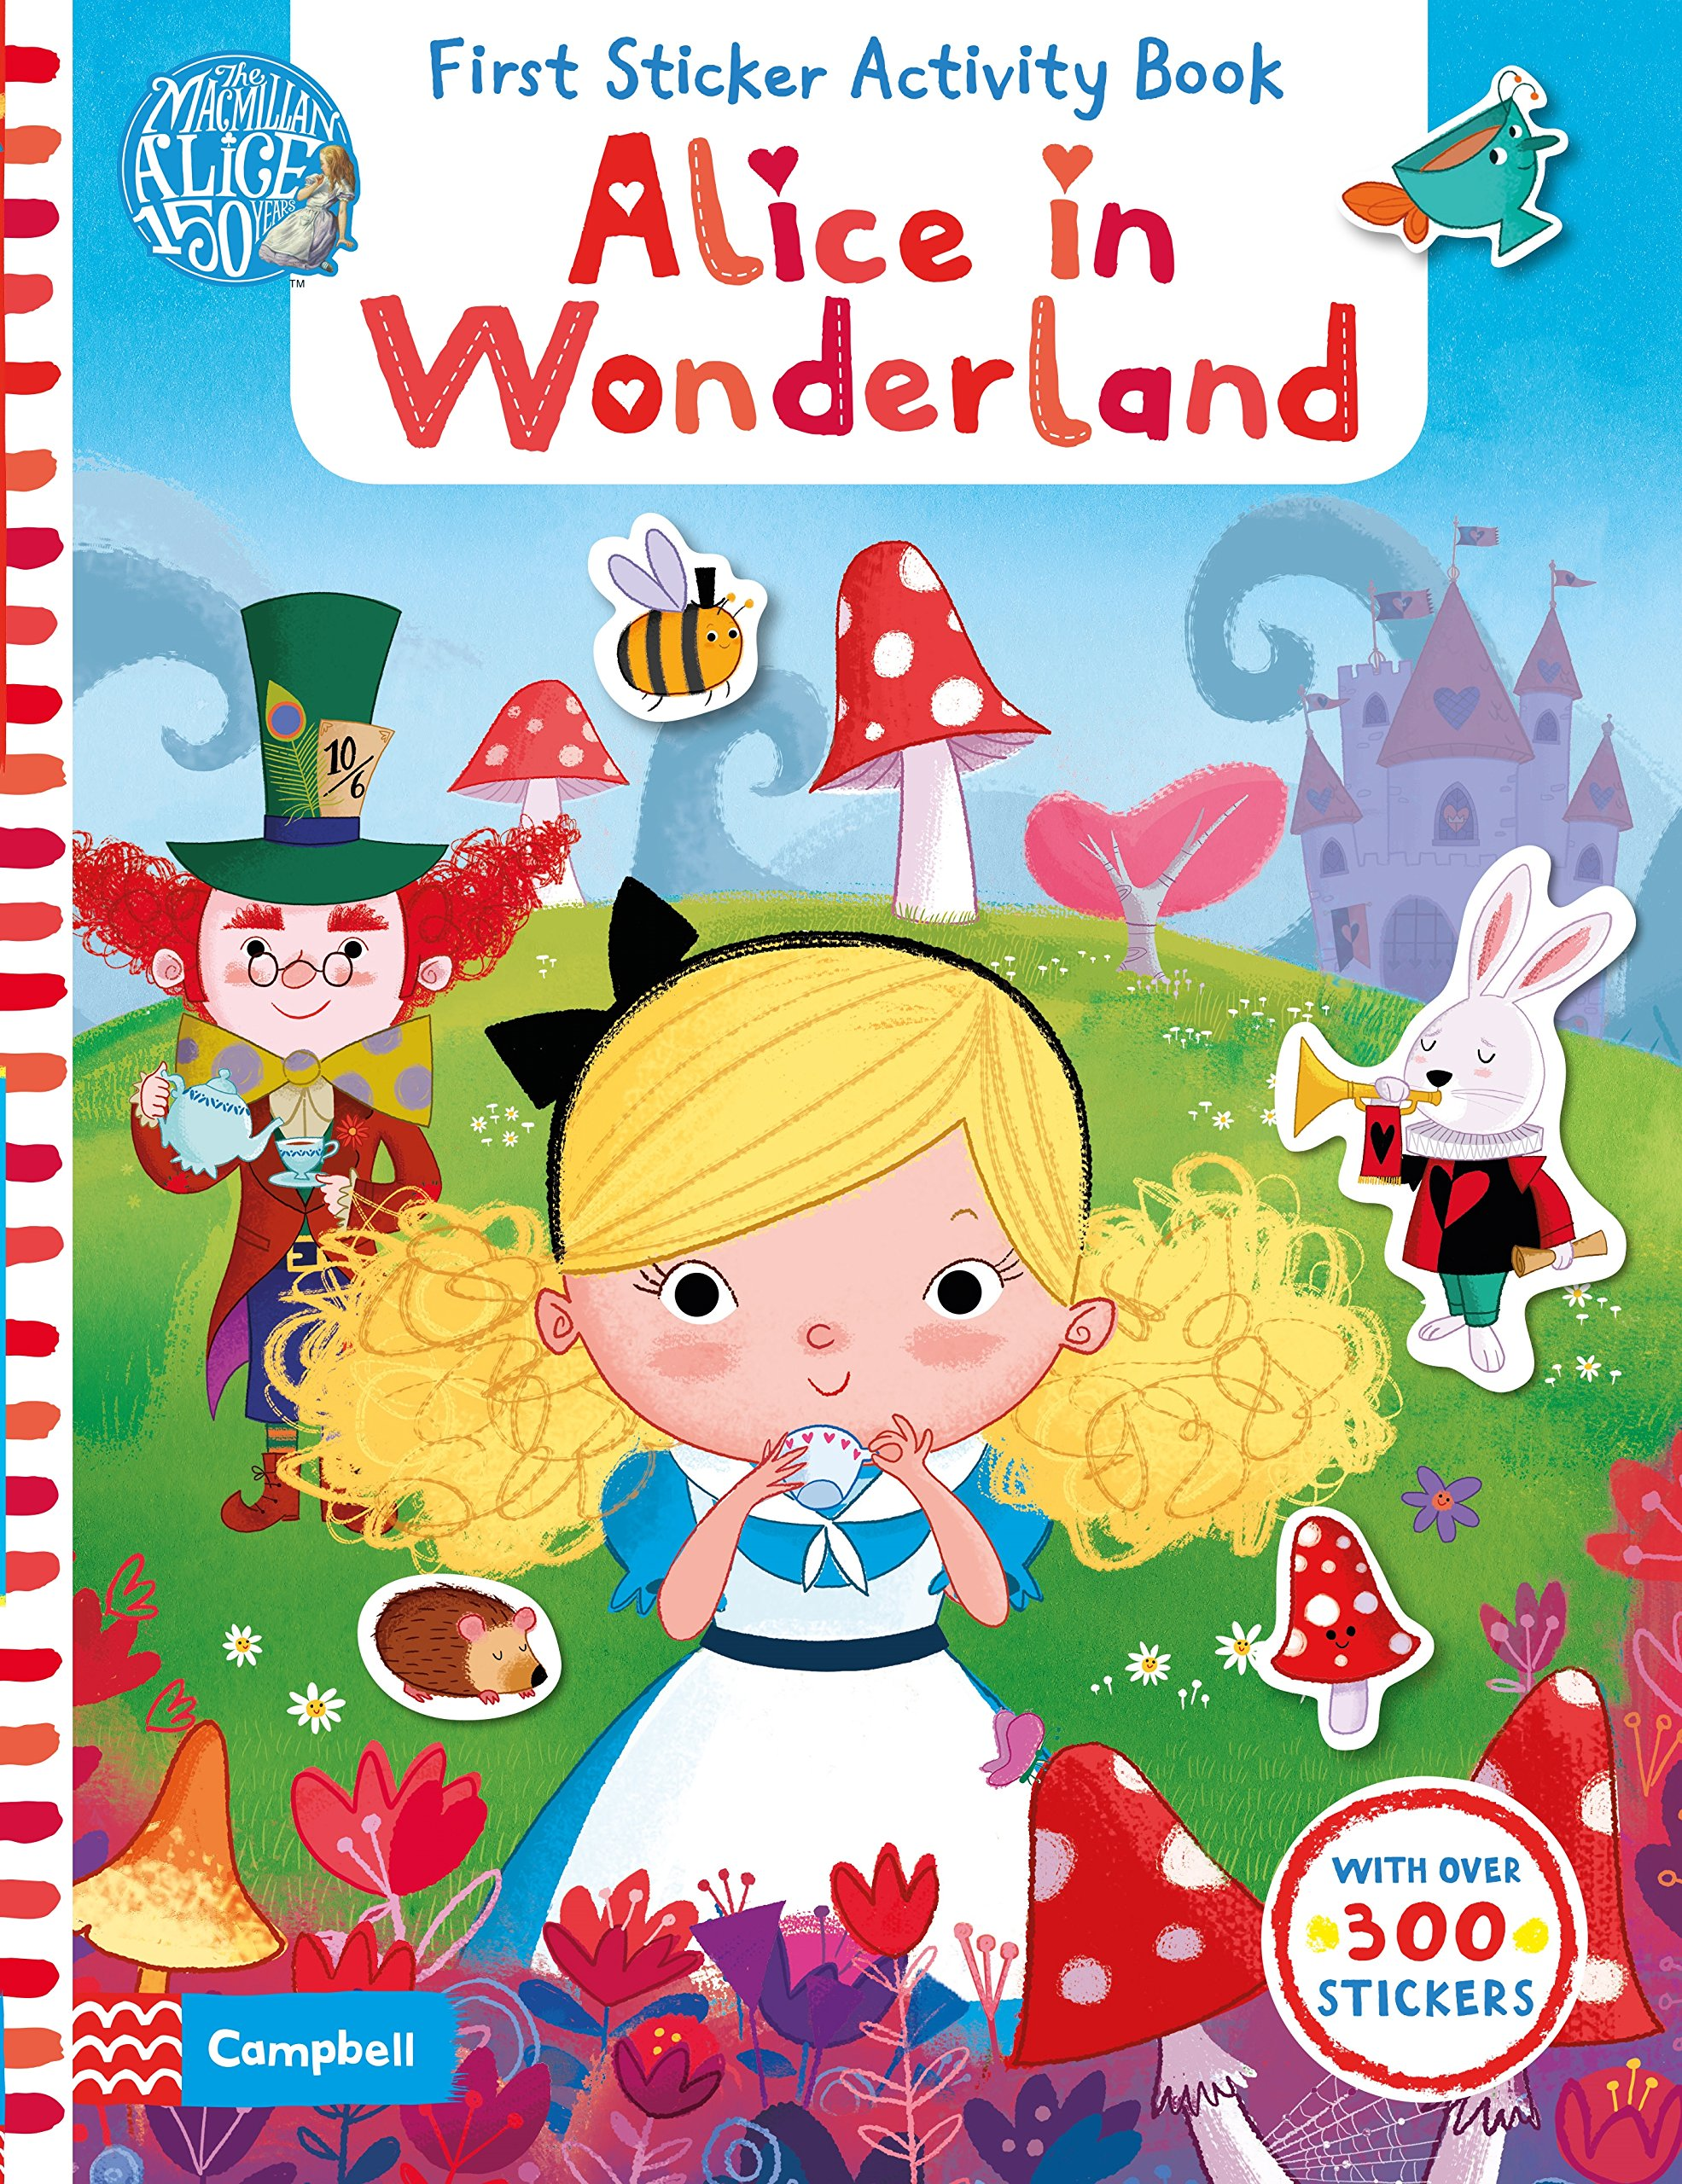 Alice in Wonderland: First Sticker Activity Book 2018 yiwi never stationery rose standard six hole notebook handbook loose leaf page separator page index page